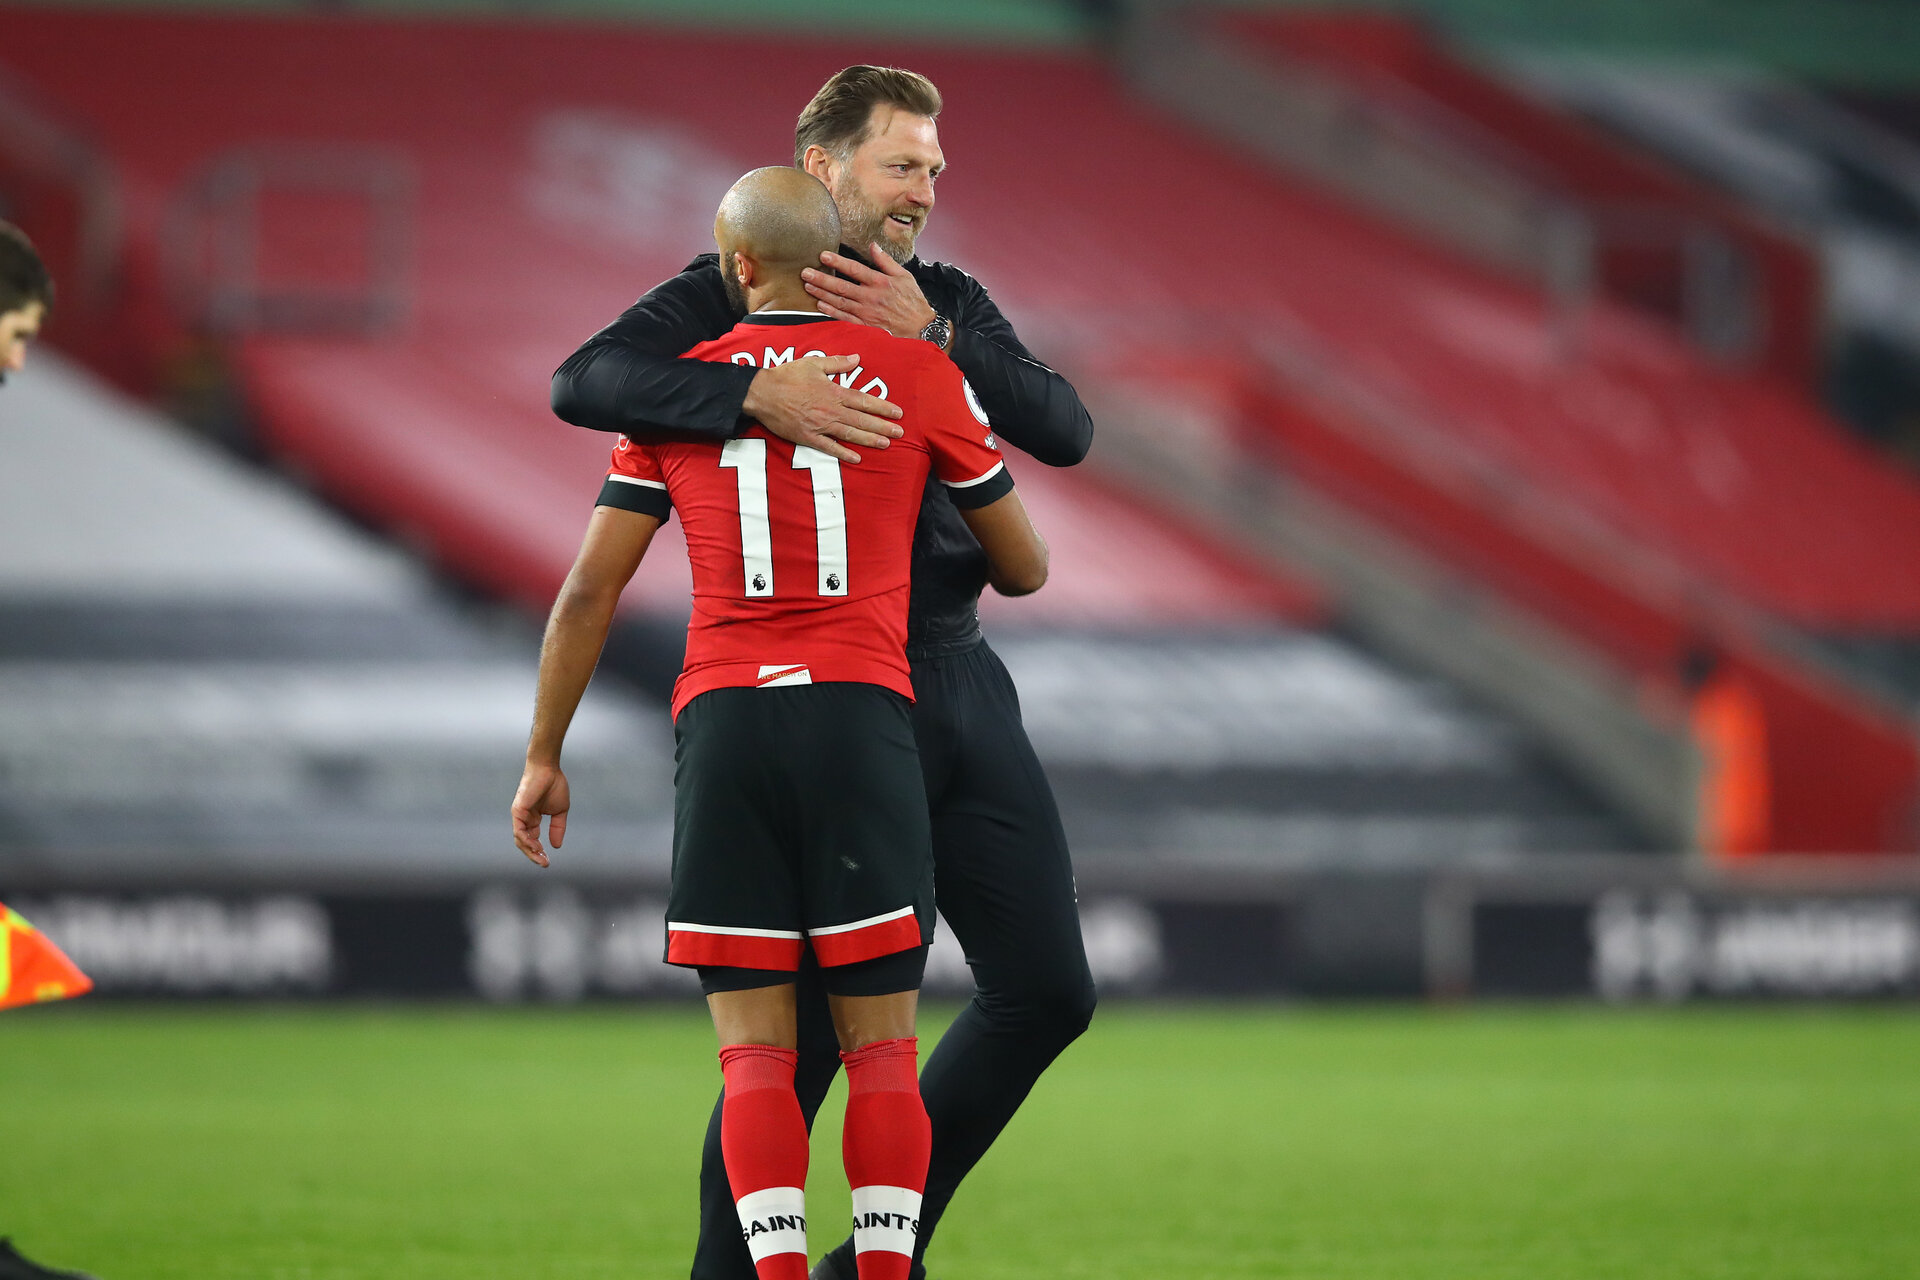 SOUTHAMPTON, ENGLAND - NOVEMBER 06: Nathan Redmond(L) Ralph Hasenhuttl (R) during the Premier League match between Southampton and Newcastle United at St Mary's Stadium on November 06, 2020 in Southampton, England. Sporting stadiums around the UK remain under strict restrictions due to the Coronavirus Pandemic as Government social distancing laws prohibit fans inside venues resulting in games being played behind closed doors. (Photo by Matt Watson/Southampton FC via Getty Images)